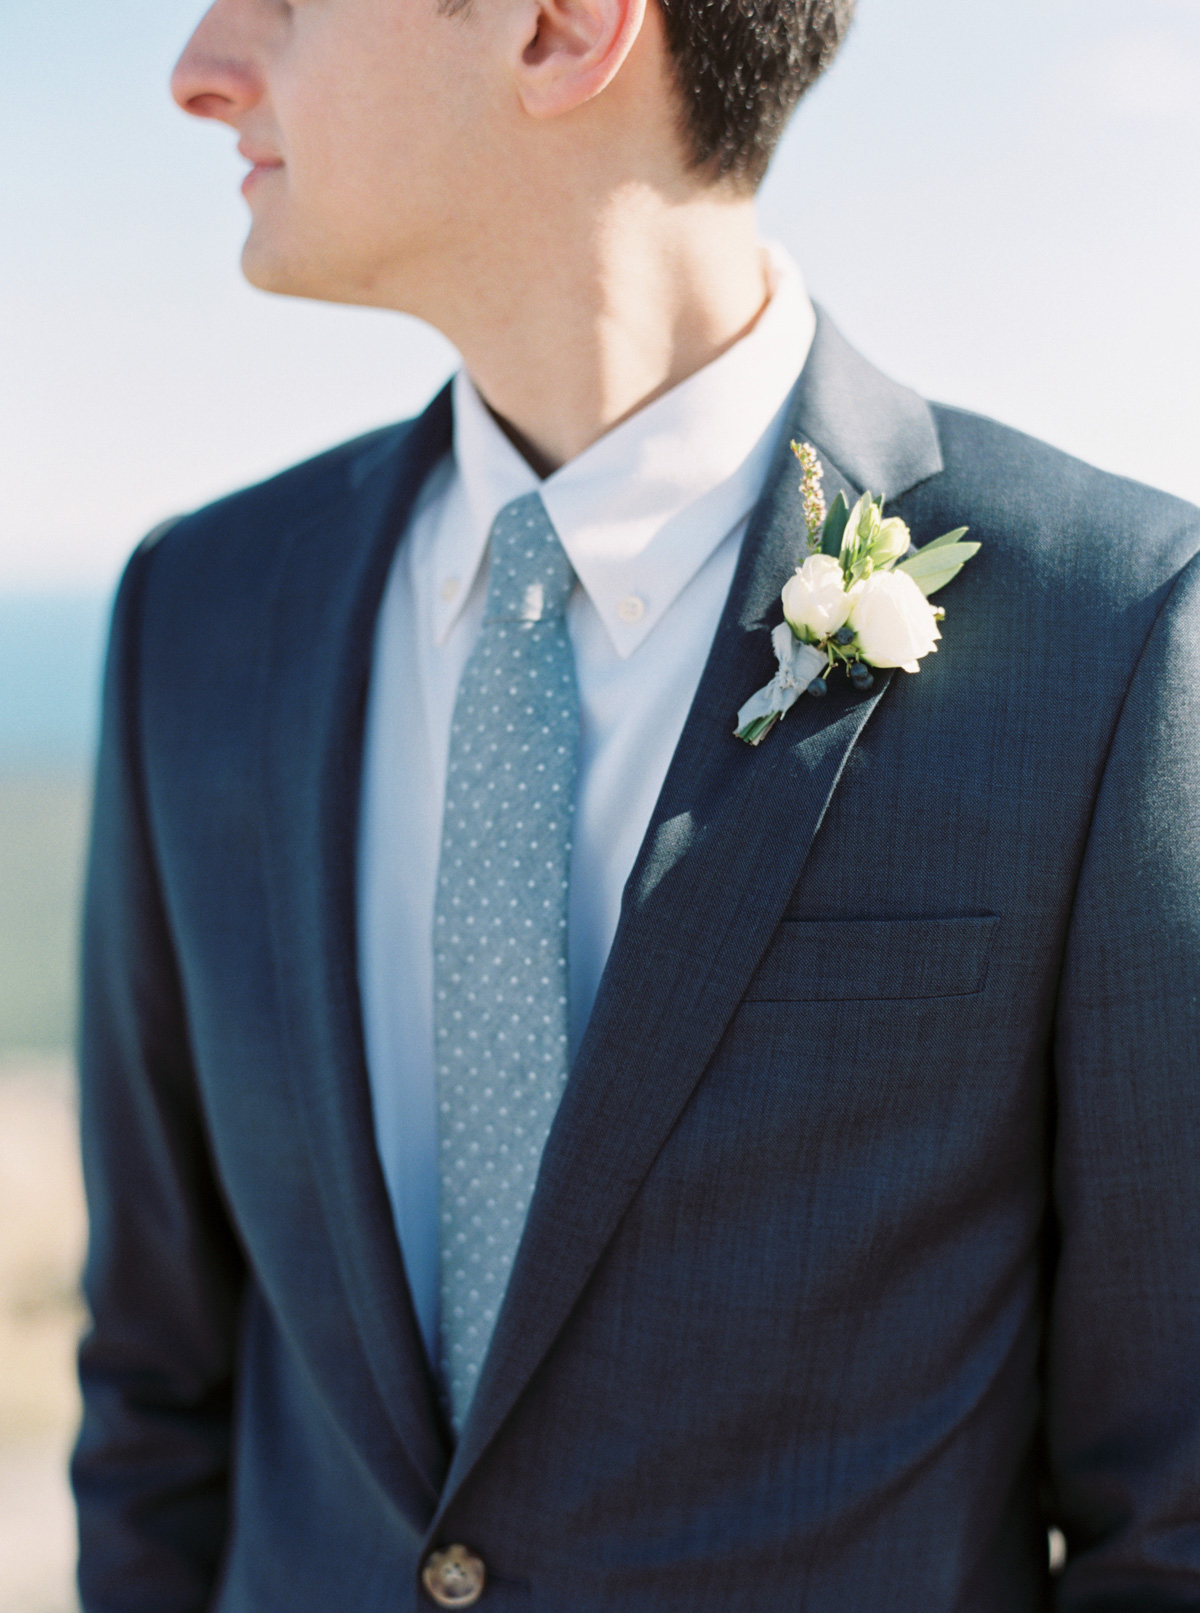 groom wearing navy suit with spotted blue tie